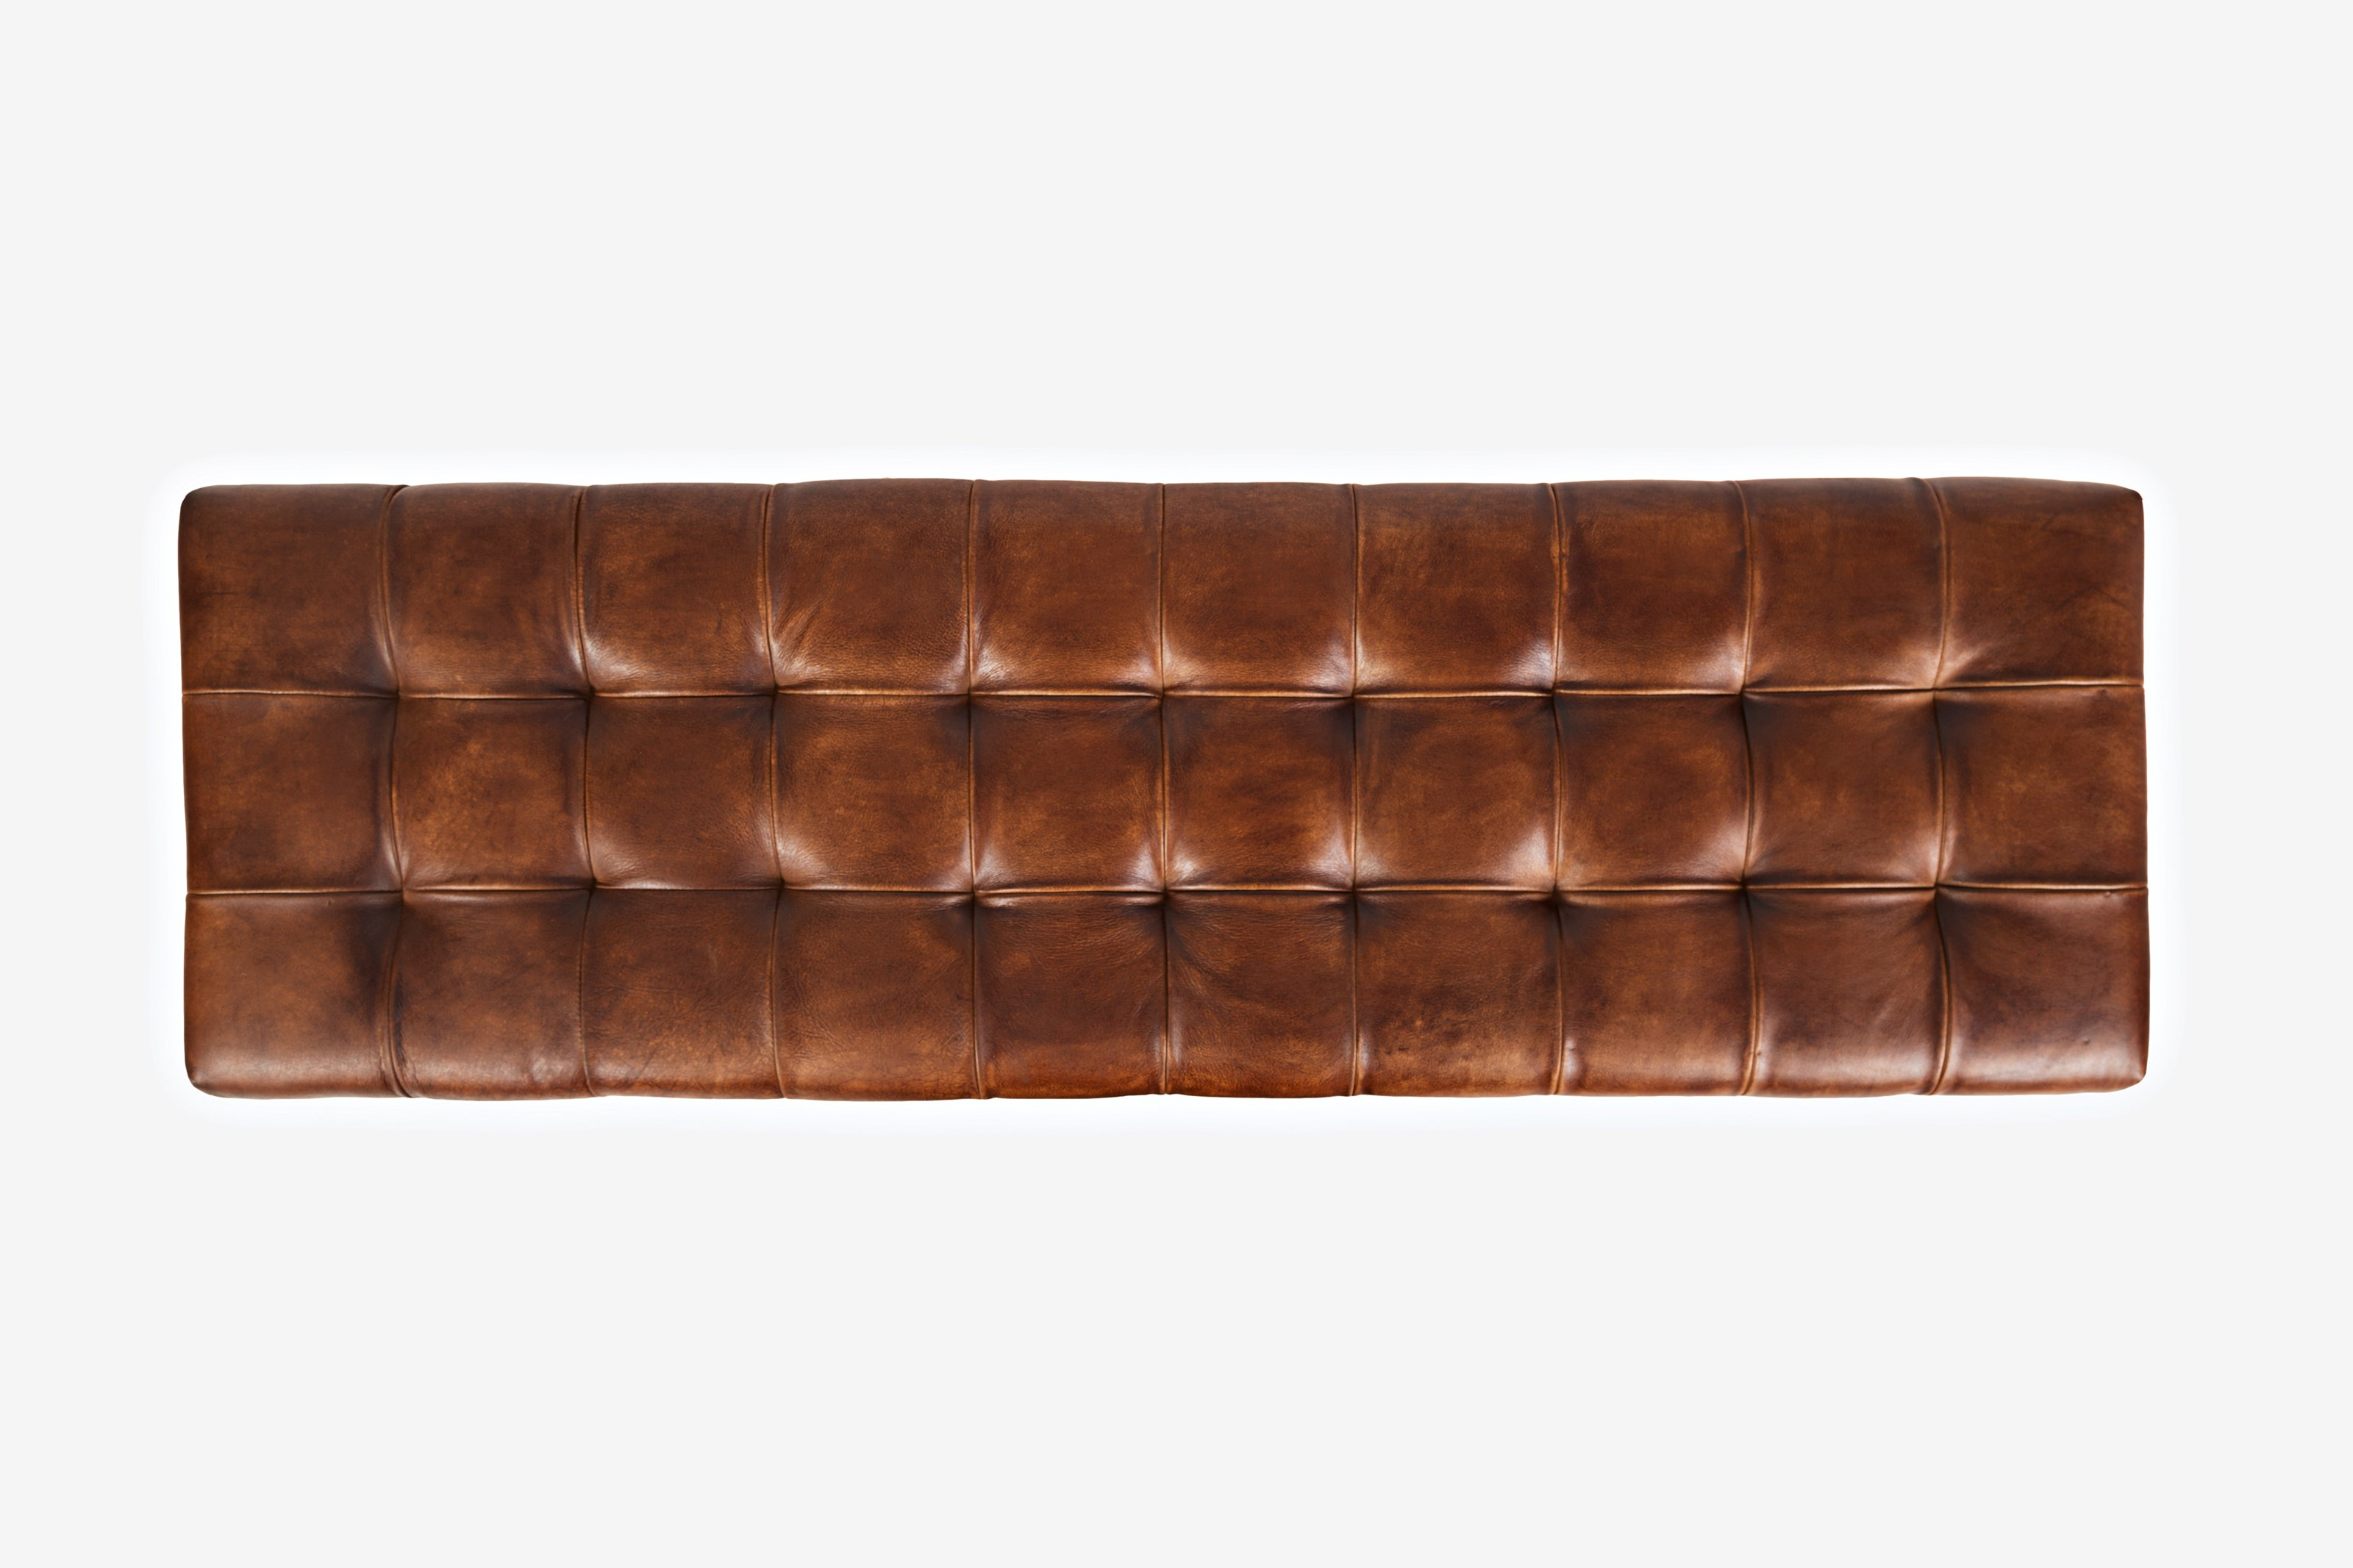 Jofran Global Archive Leather Ottoman HomeWorld  : products2Fjofran2Fcolor2Fglobal20archive2017301730 76 b7 from www.homeworld.com size 3200 x 2133 jpeg 483kB